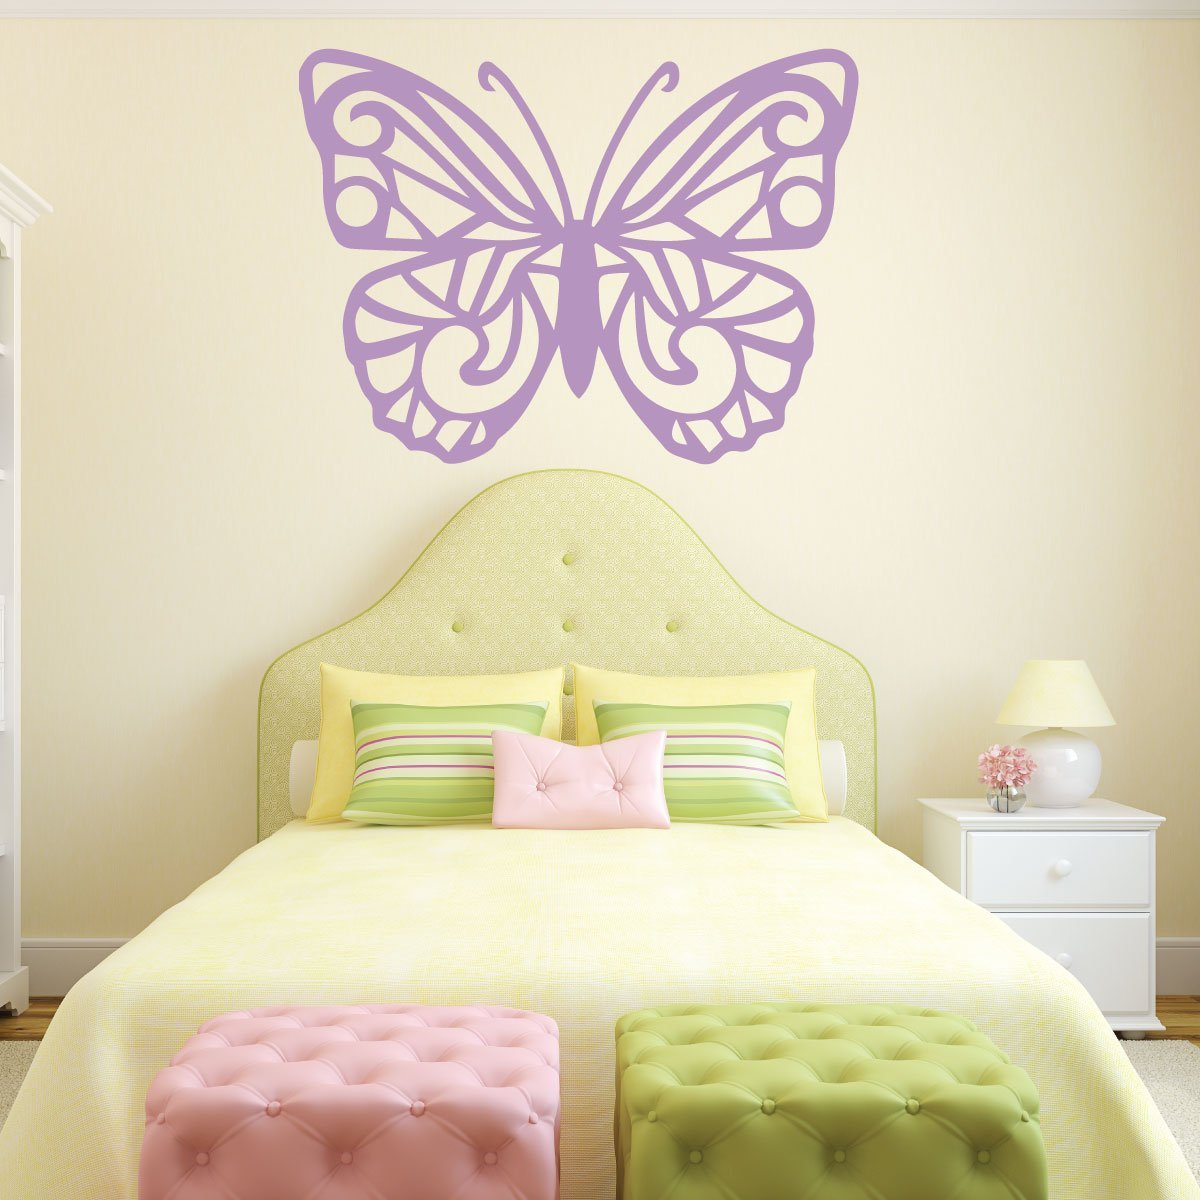 Butterfly Wall Decor Stain Vinyl Decor Wall Decal